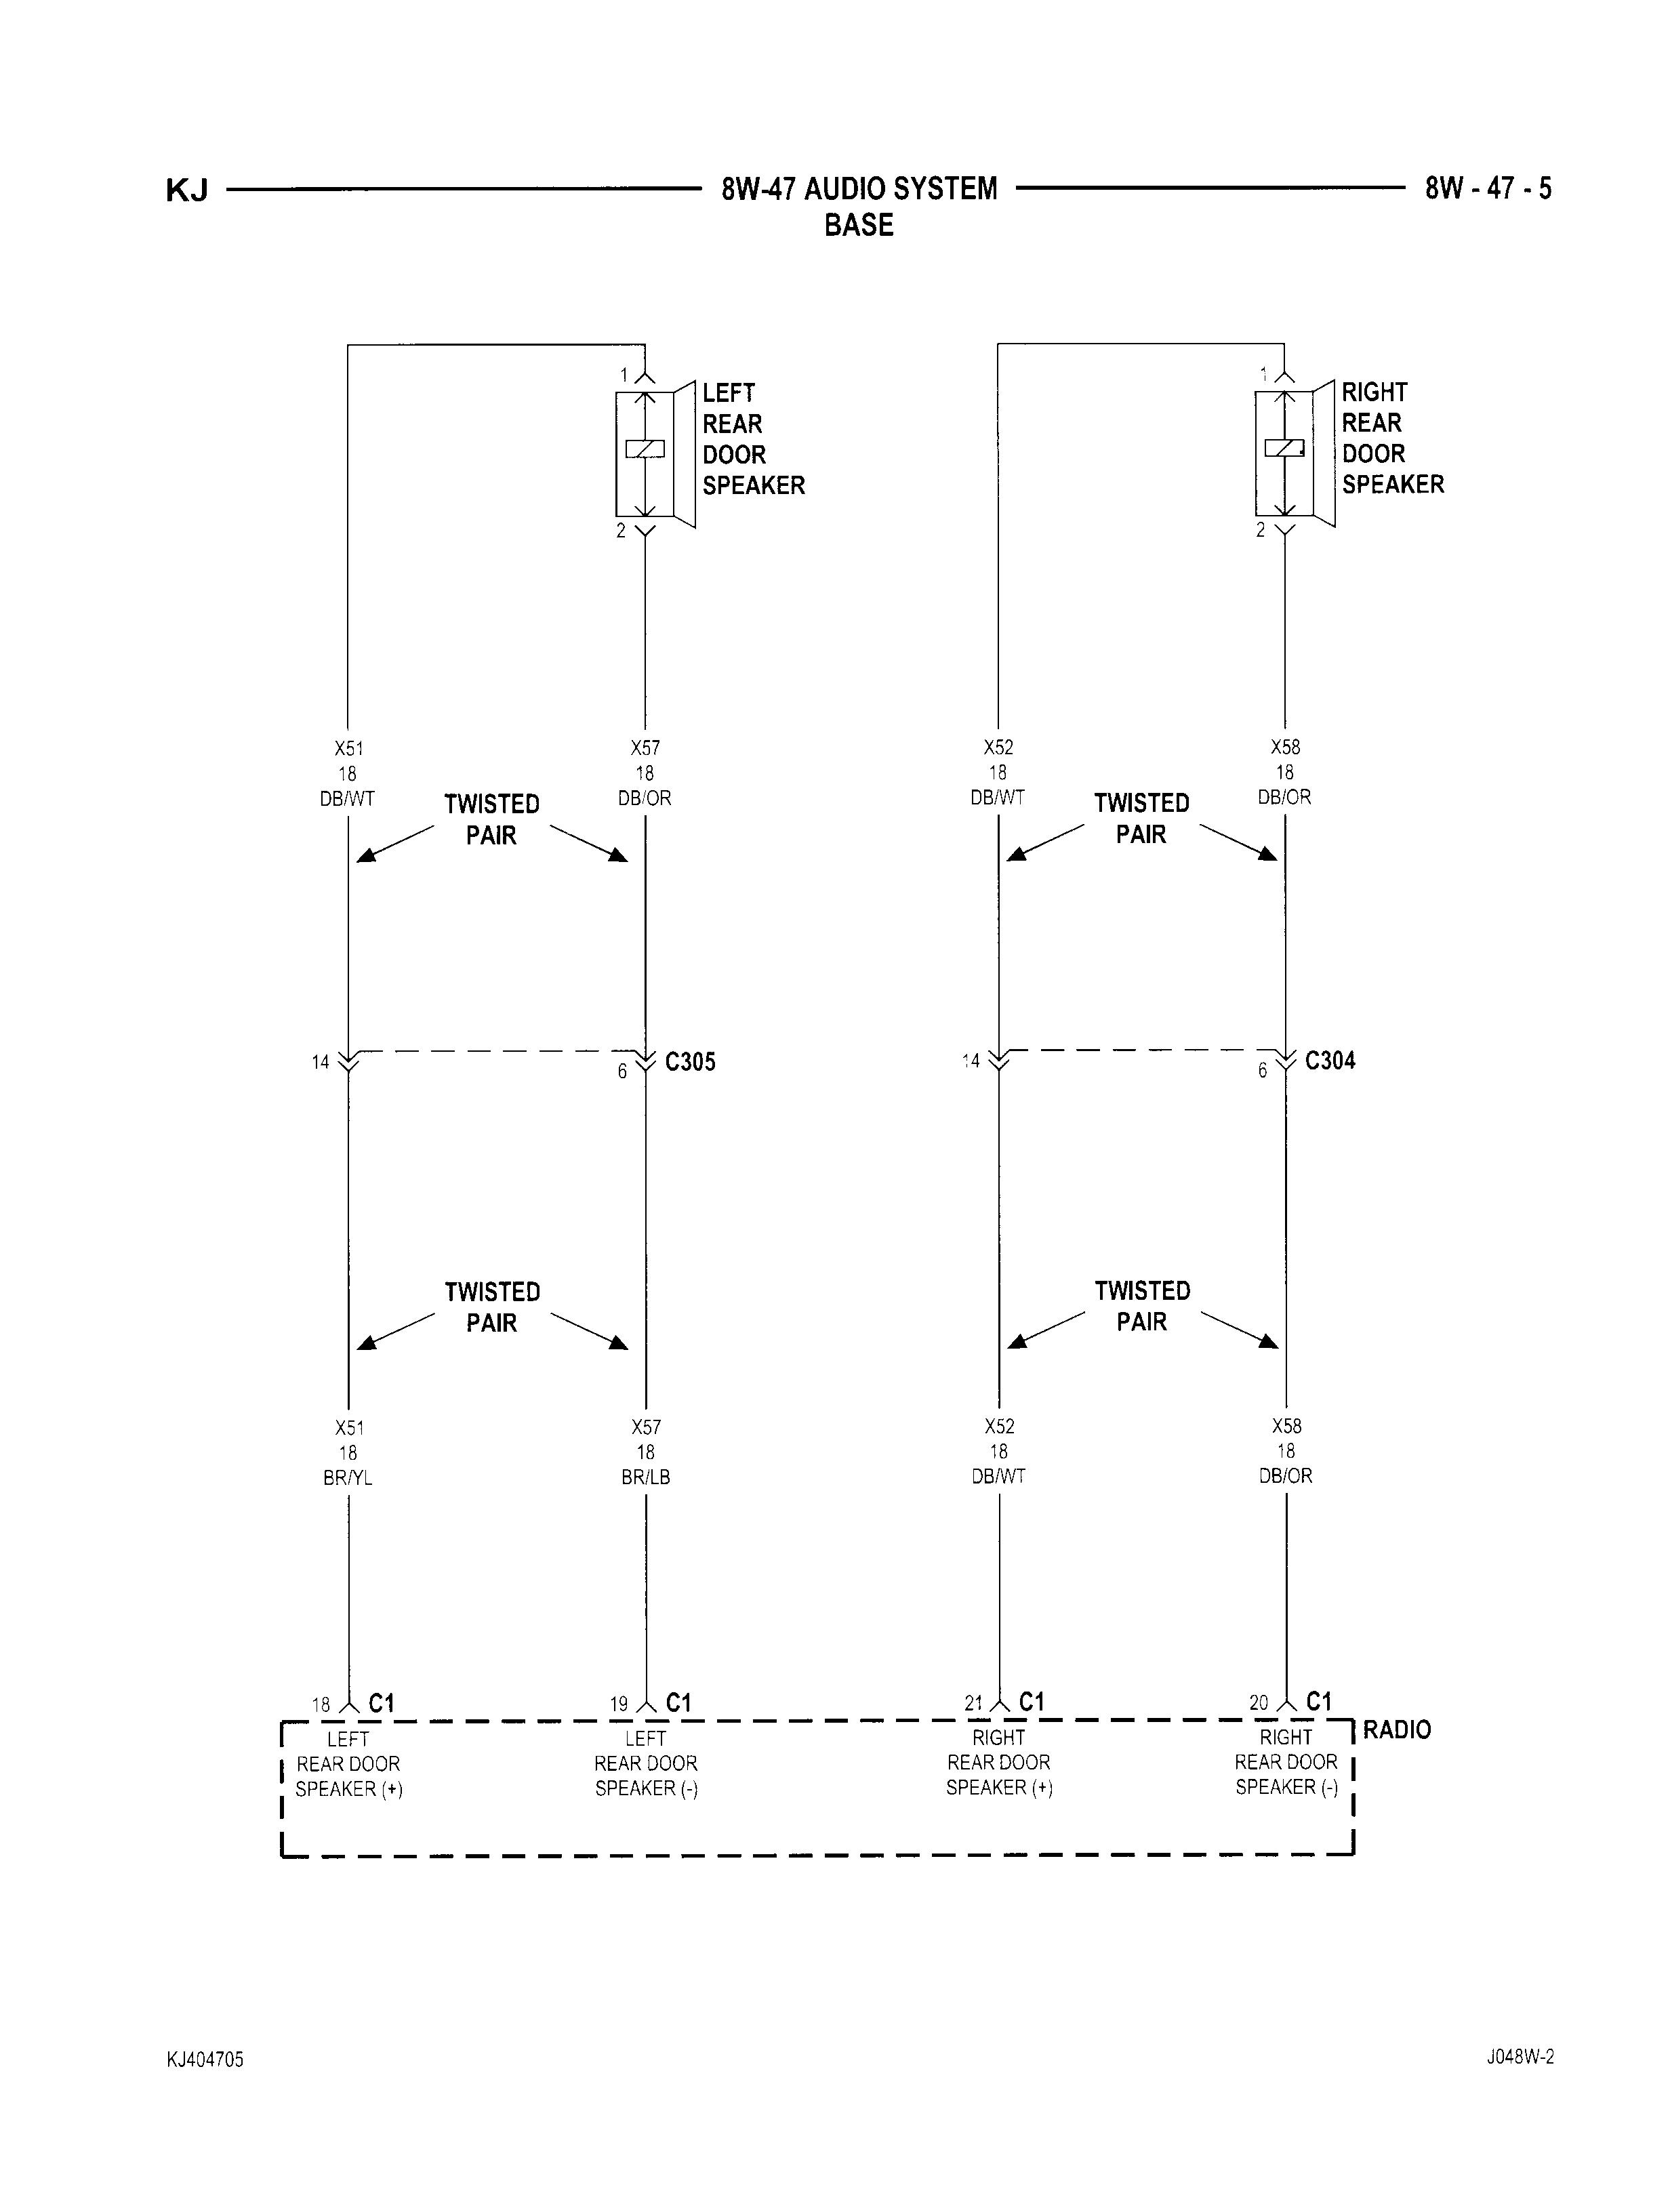 Decoding Whats Pos And Neg On Spkr Wires Jeep Liberty Forum Wiring Diagram 2003 Limited Hope These Help